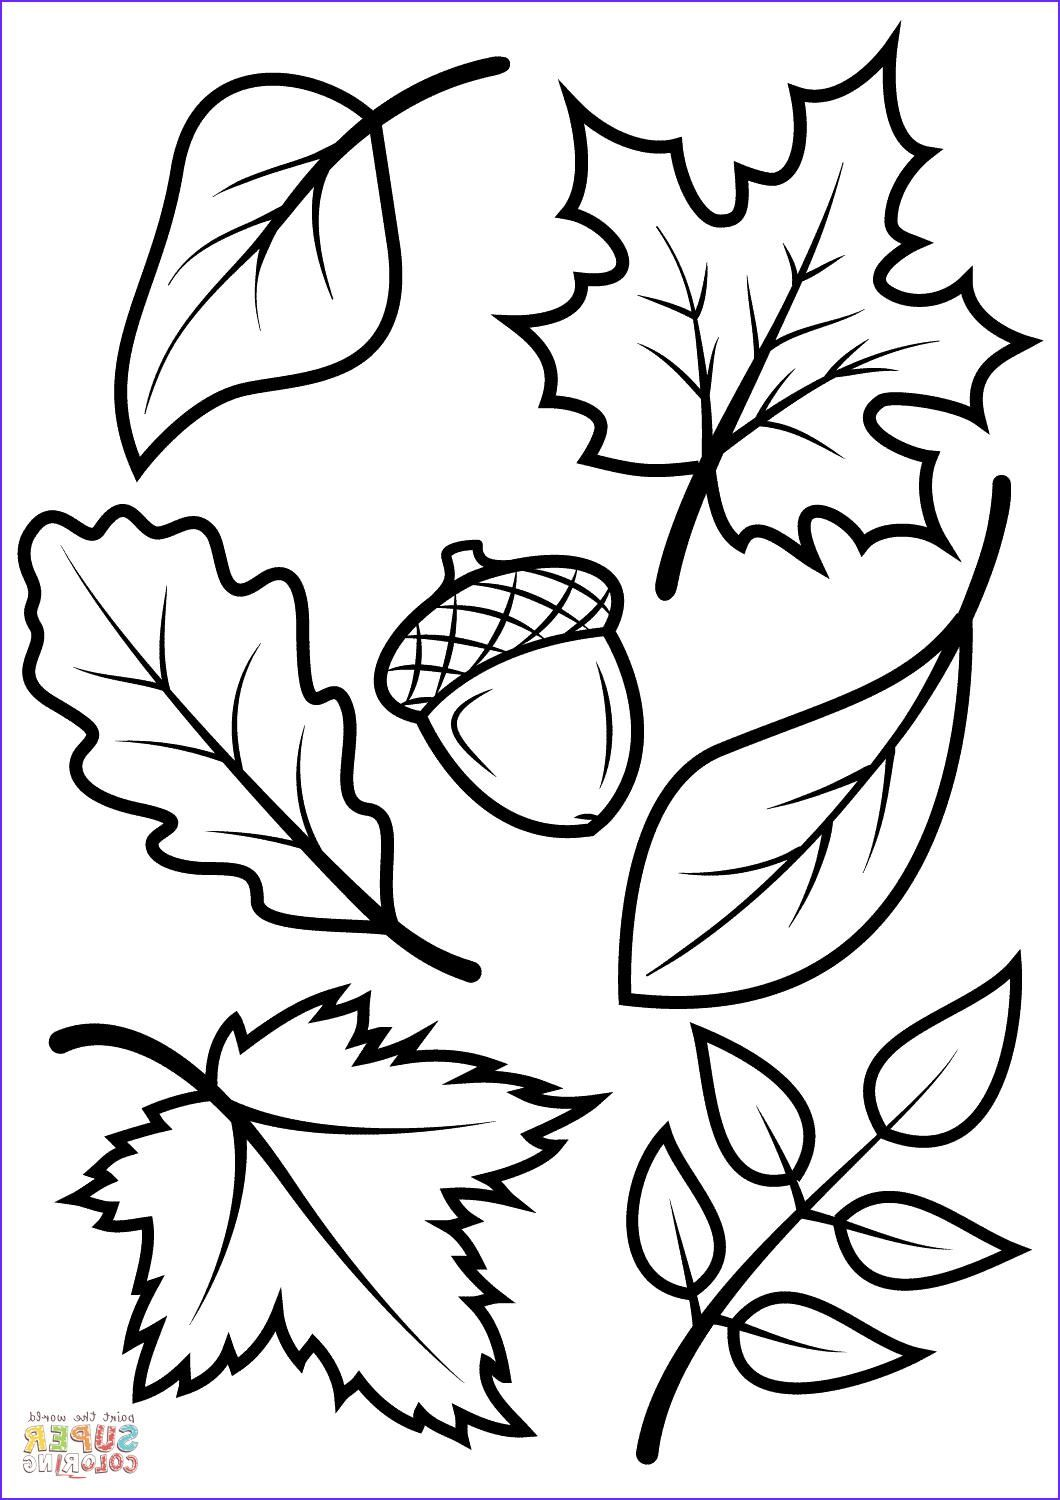 42 Coloring Page Leaves Leaf Coloring Page Fall Coloring Pages Fall Coloring Sheets